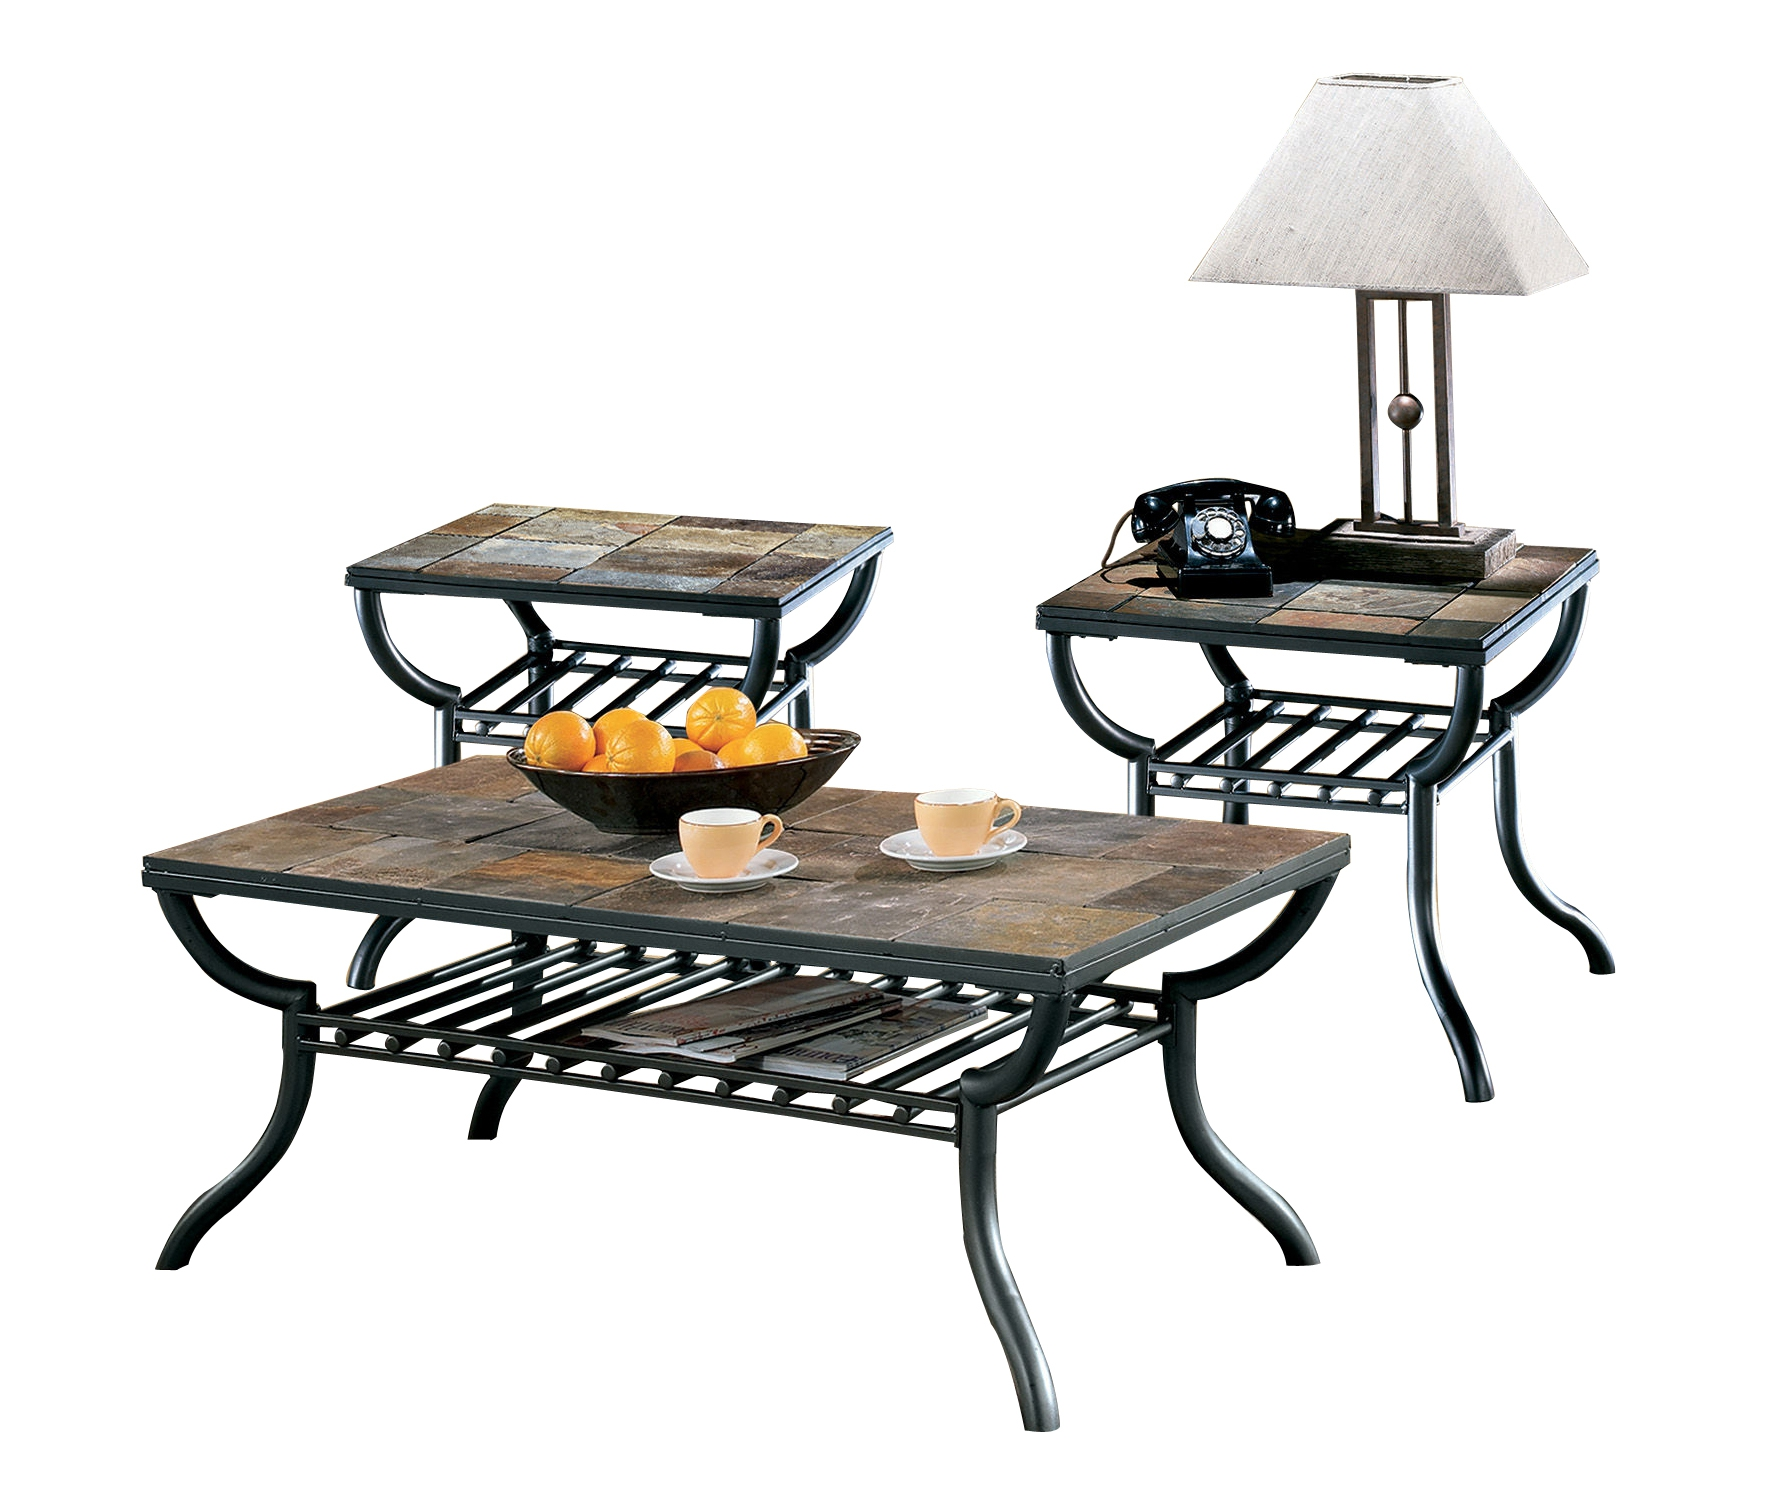 Ashley Furniture Antigo 3pc Coffee Table Set Click To Enlarge ...  sc 1 st  The Classy Home : antigo coffee table set - pezcame.com